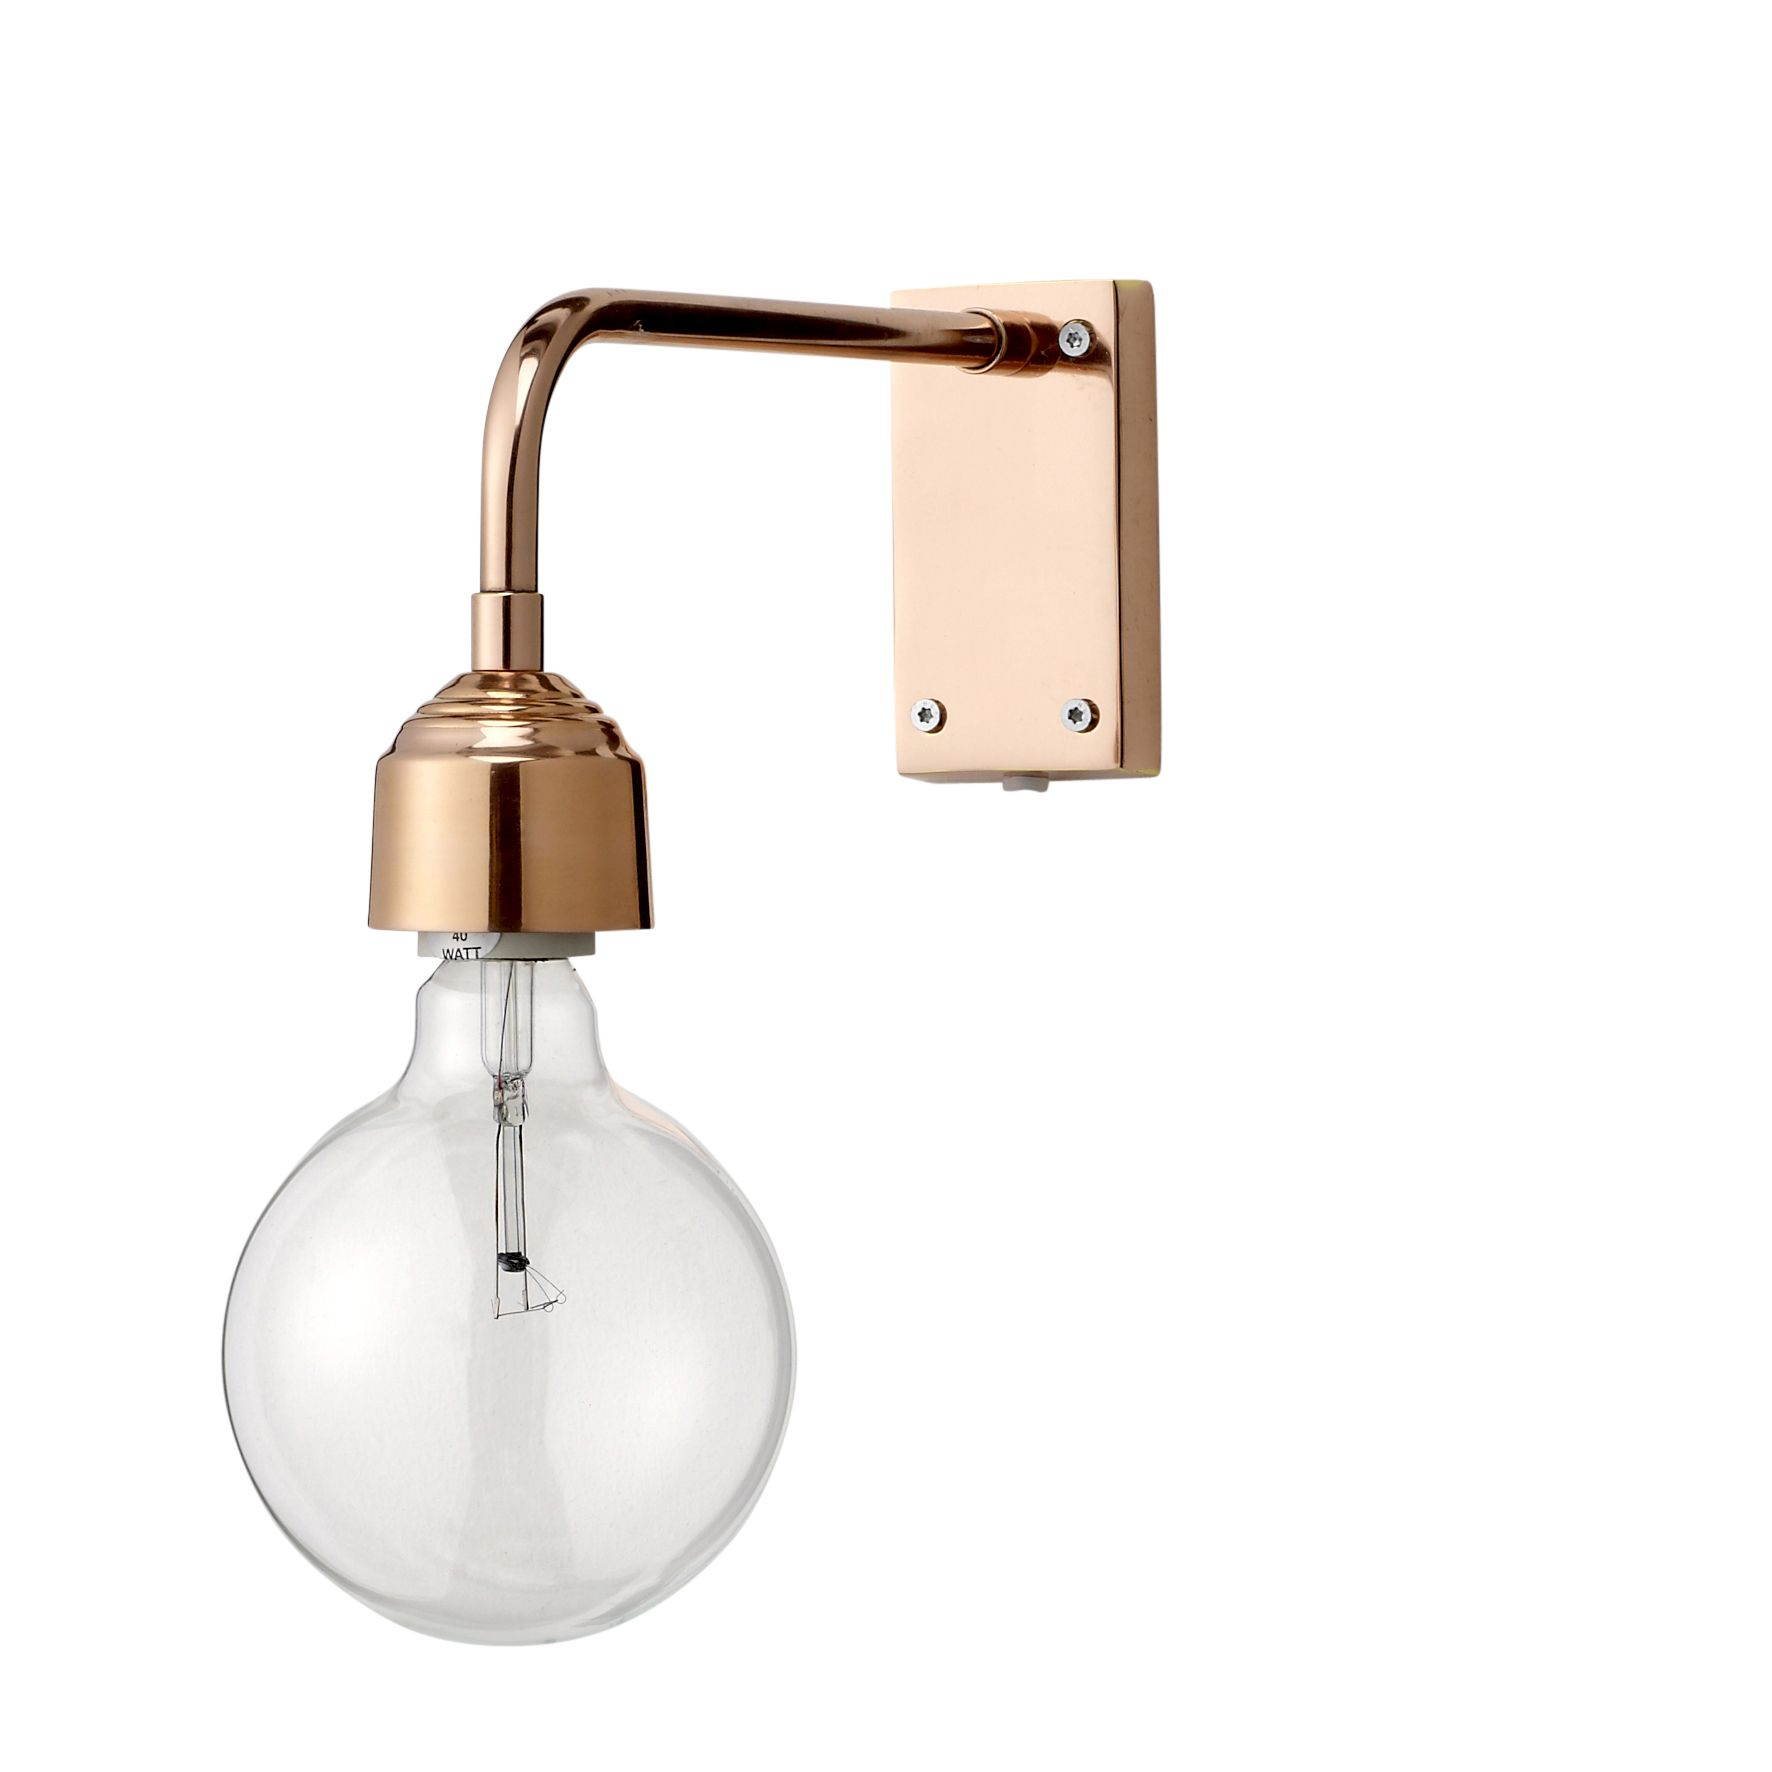 Bloomingville wall lamp barefootstyling.com Badezimmer ...